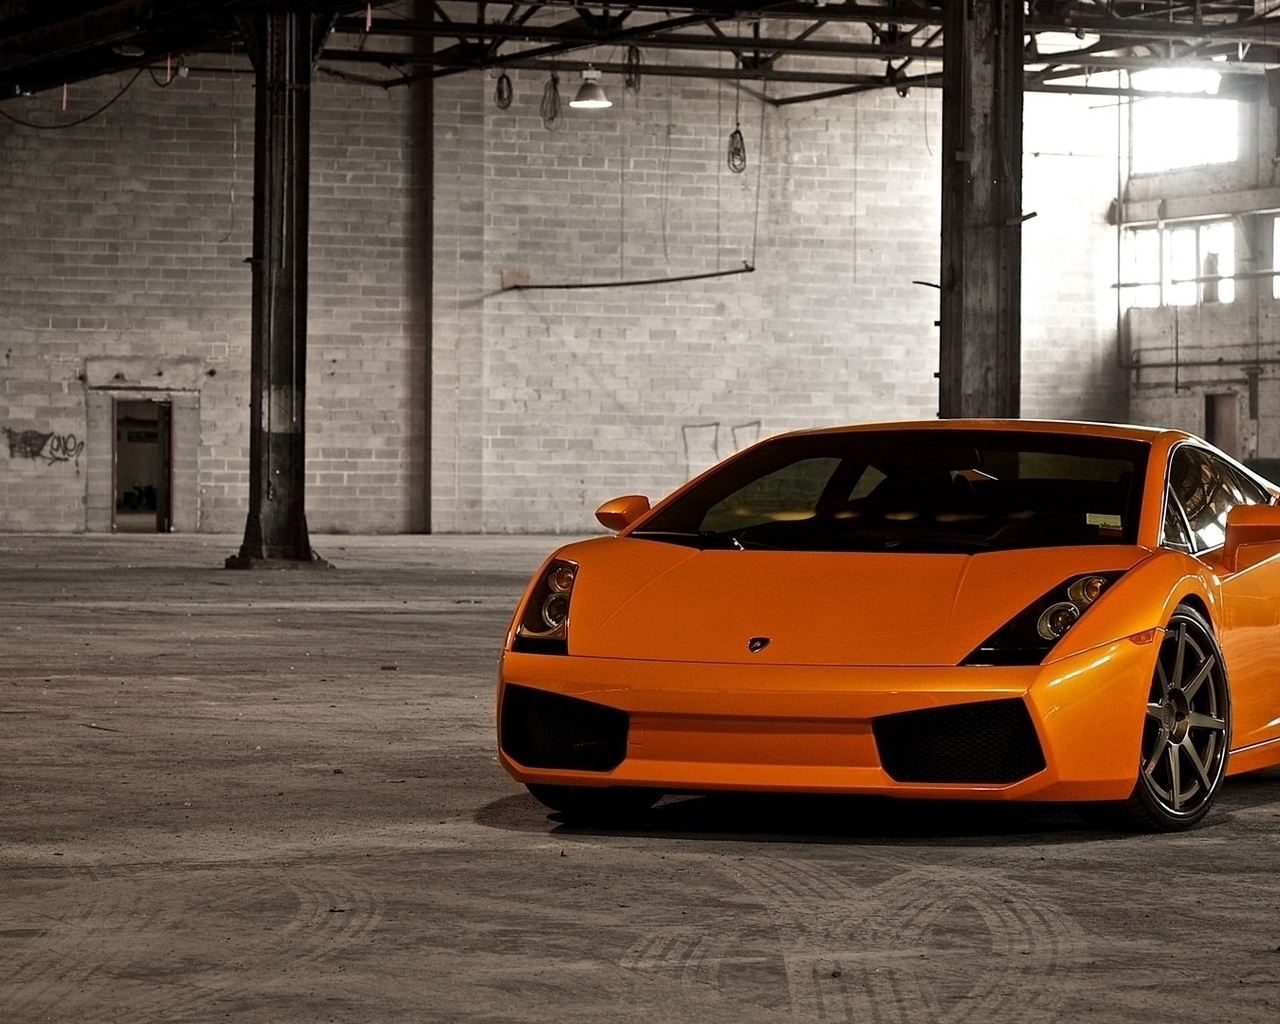 гараж, auto, cars, orange, wallpapers, lamborghini gallardo